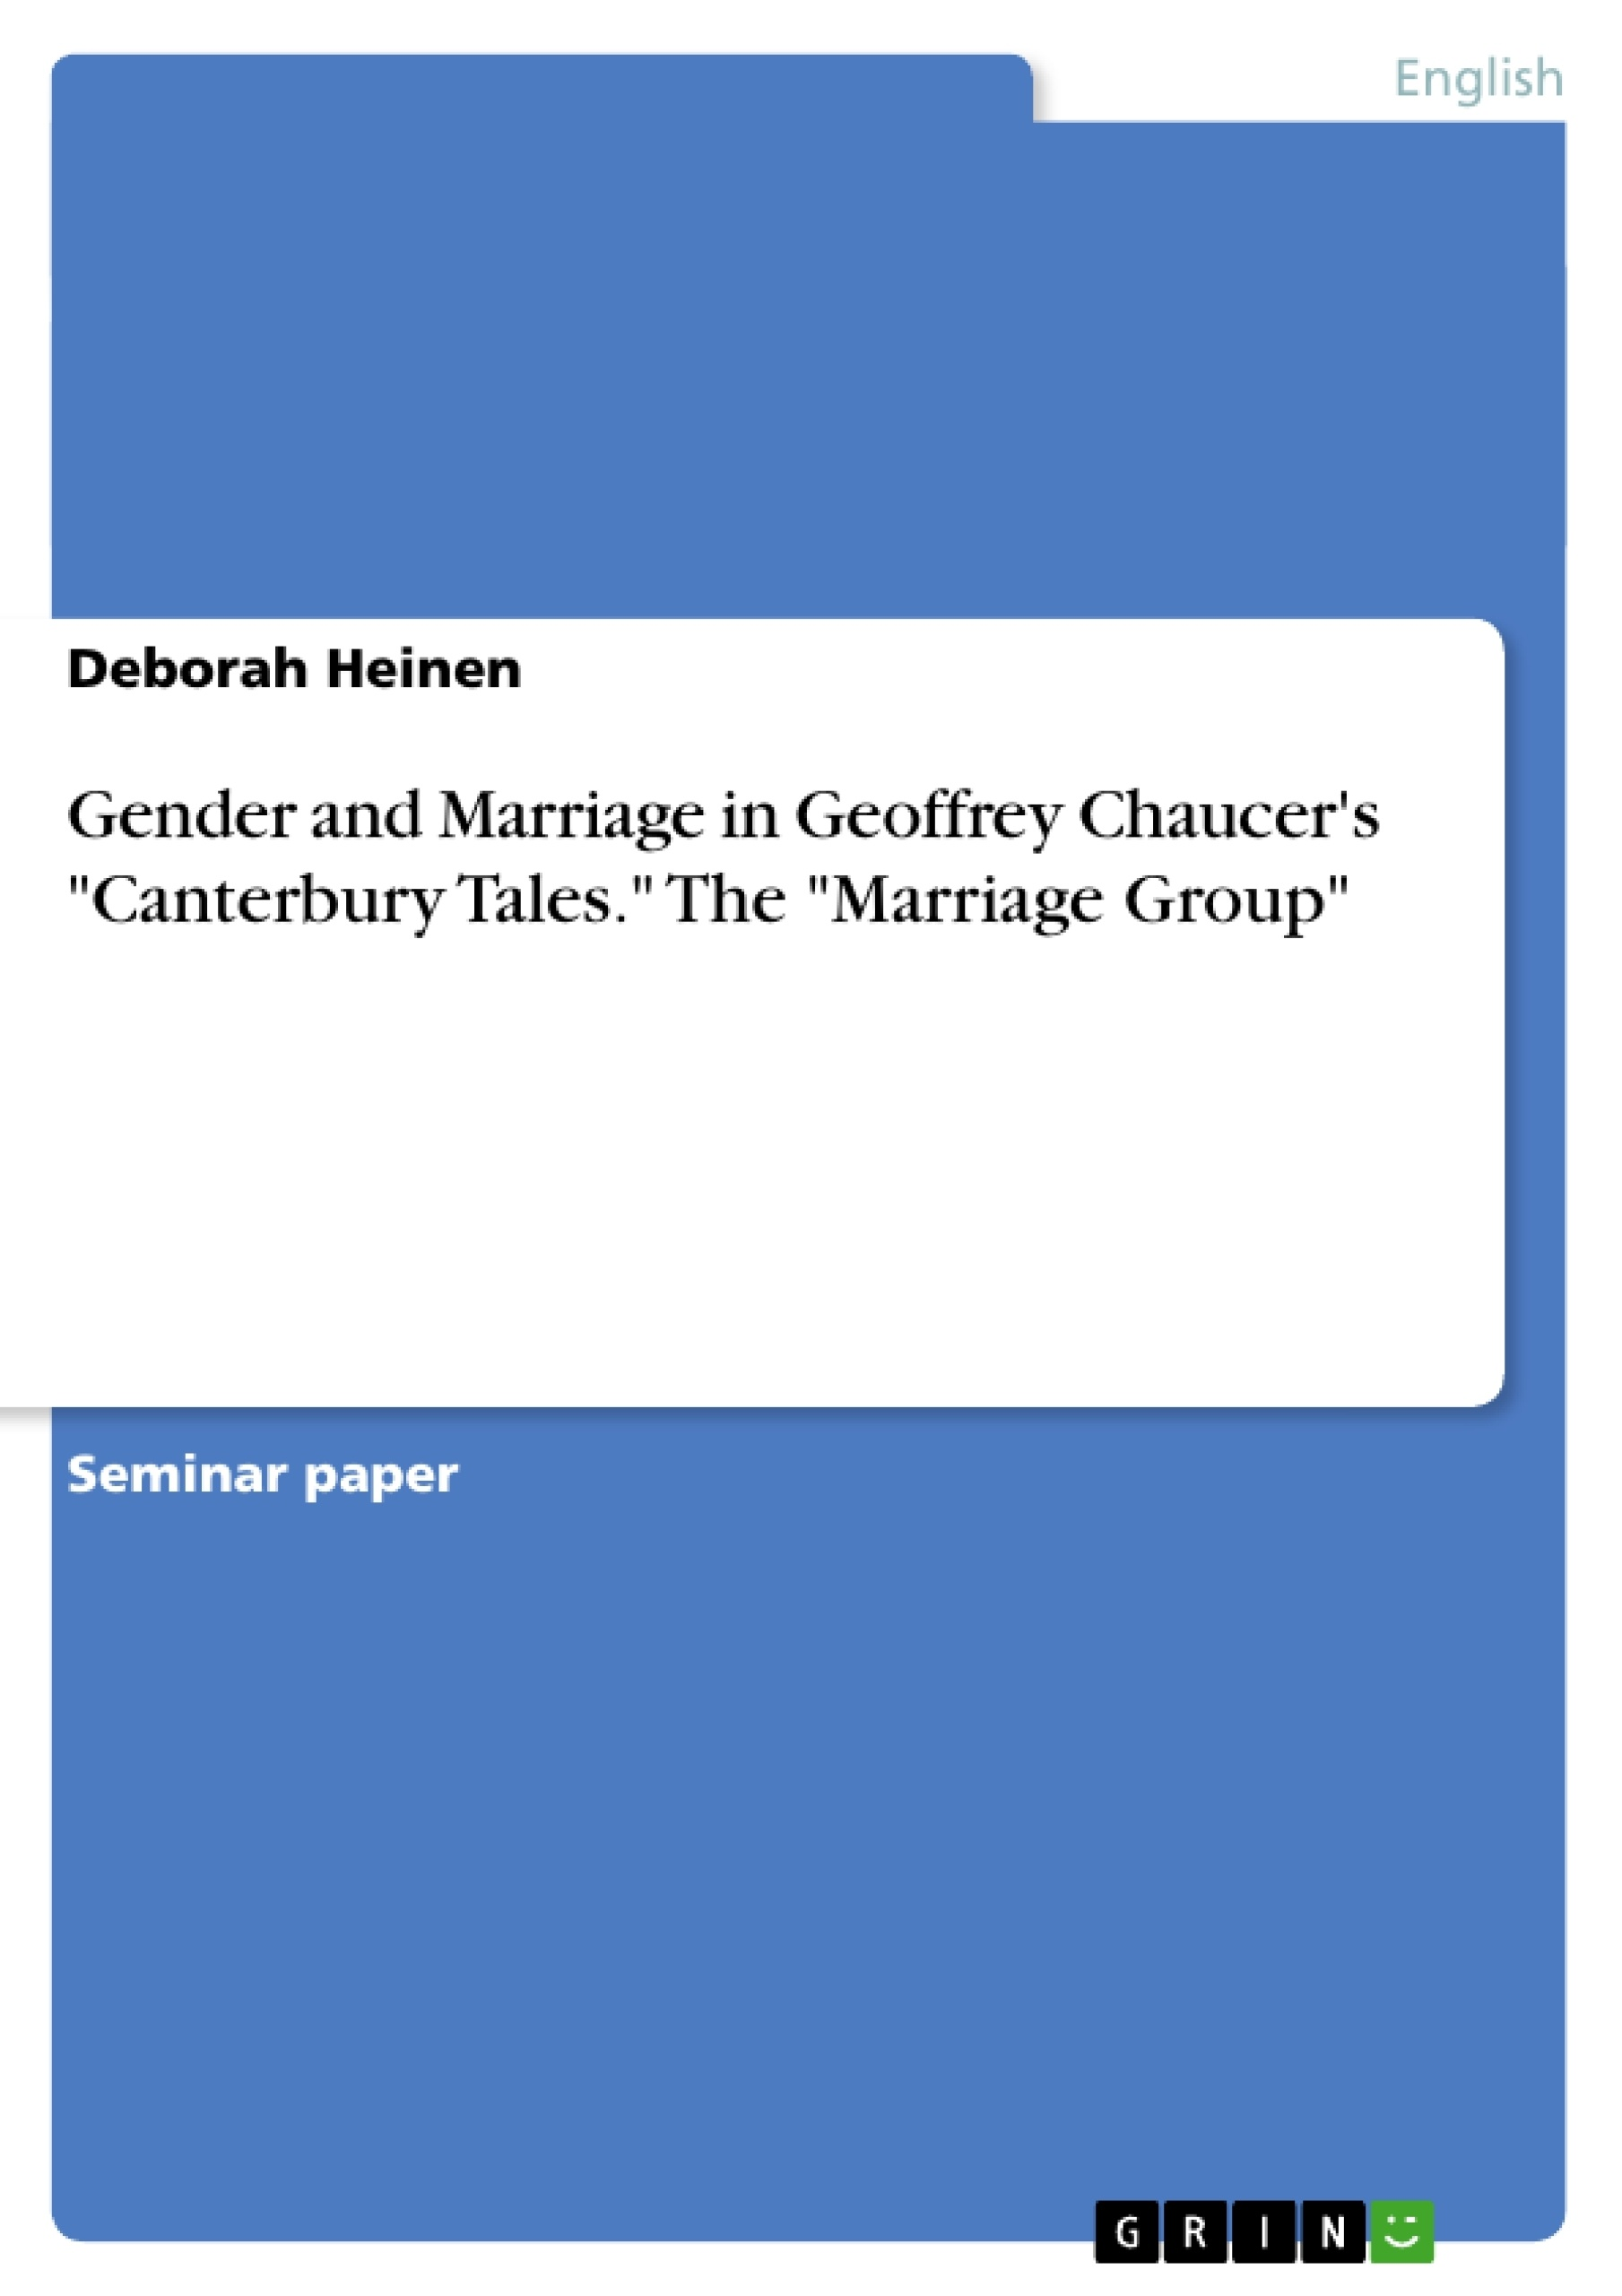 gender and marriage in geoffrey chaucer s canterbury tales the gender and marriage in geoffrey chaucer s canterbury tales the publish your master s thesis bachelor s thesis essay or term paper